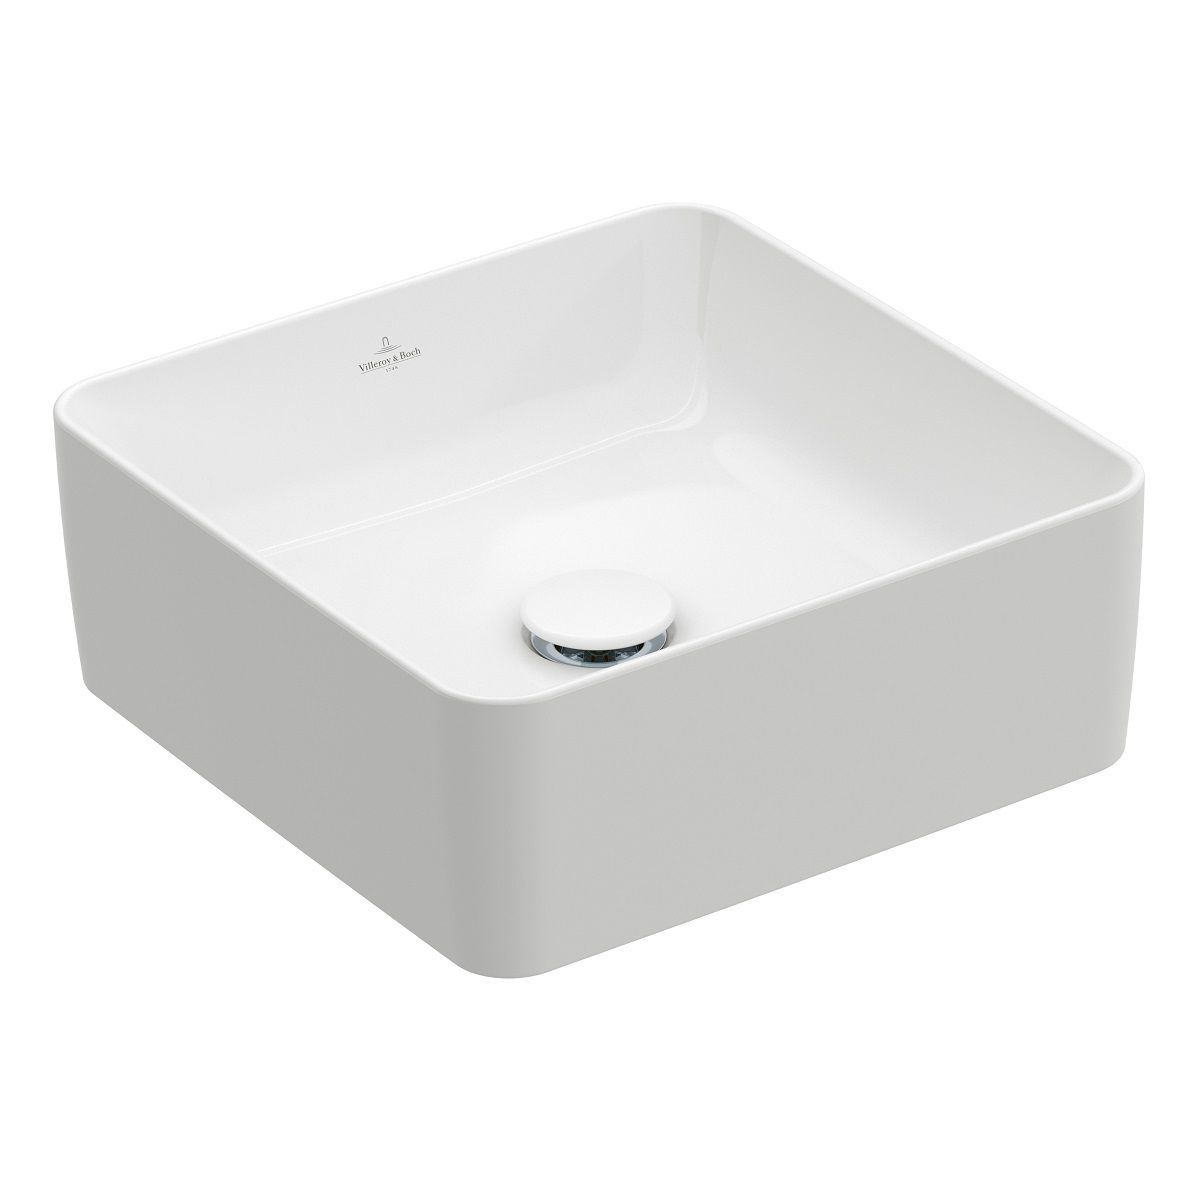 Villeroy & Boch Collaro Square Countertop Basin